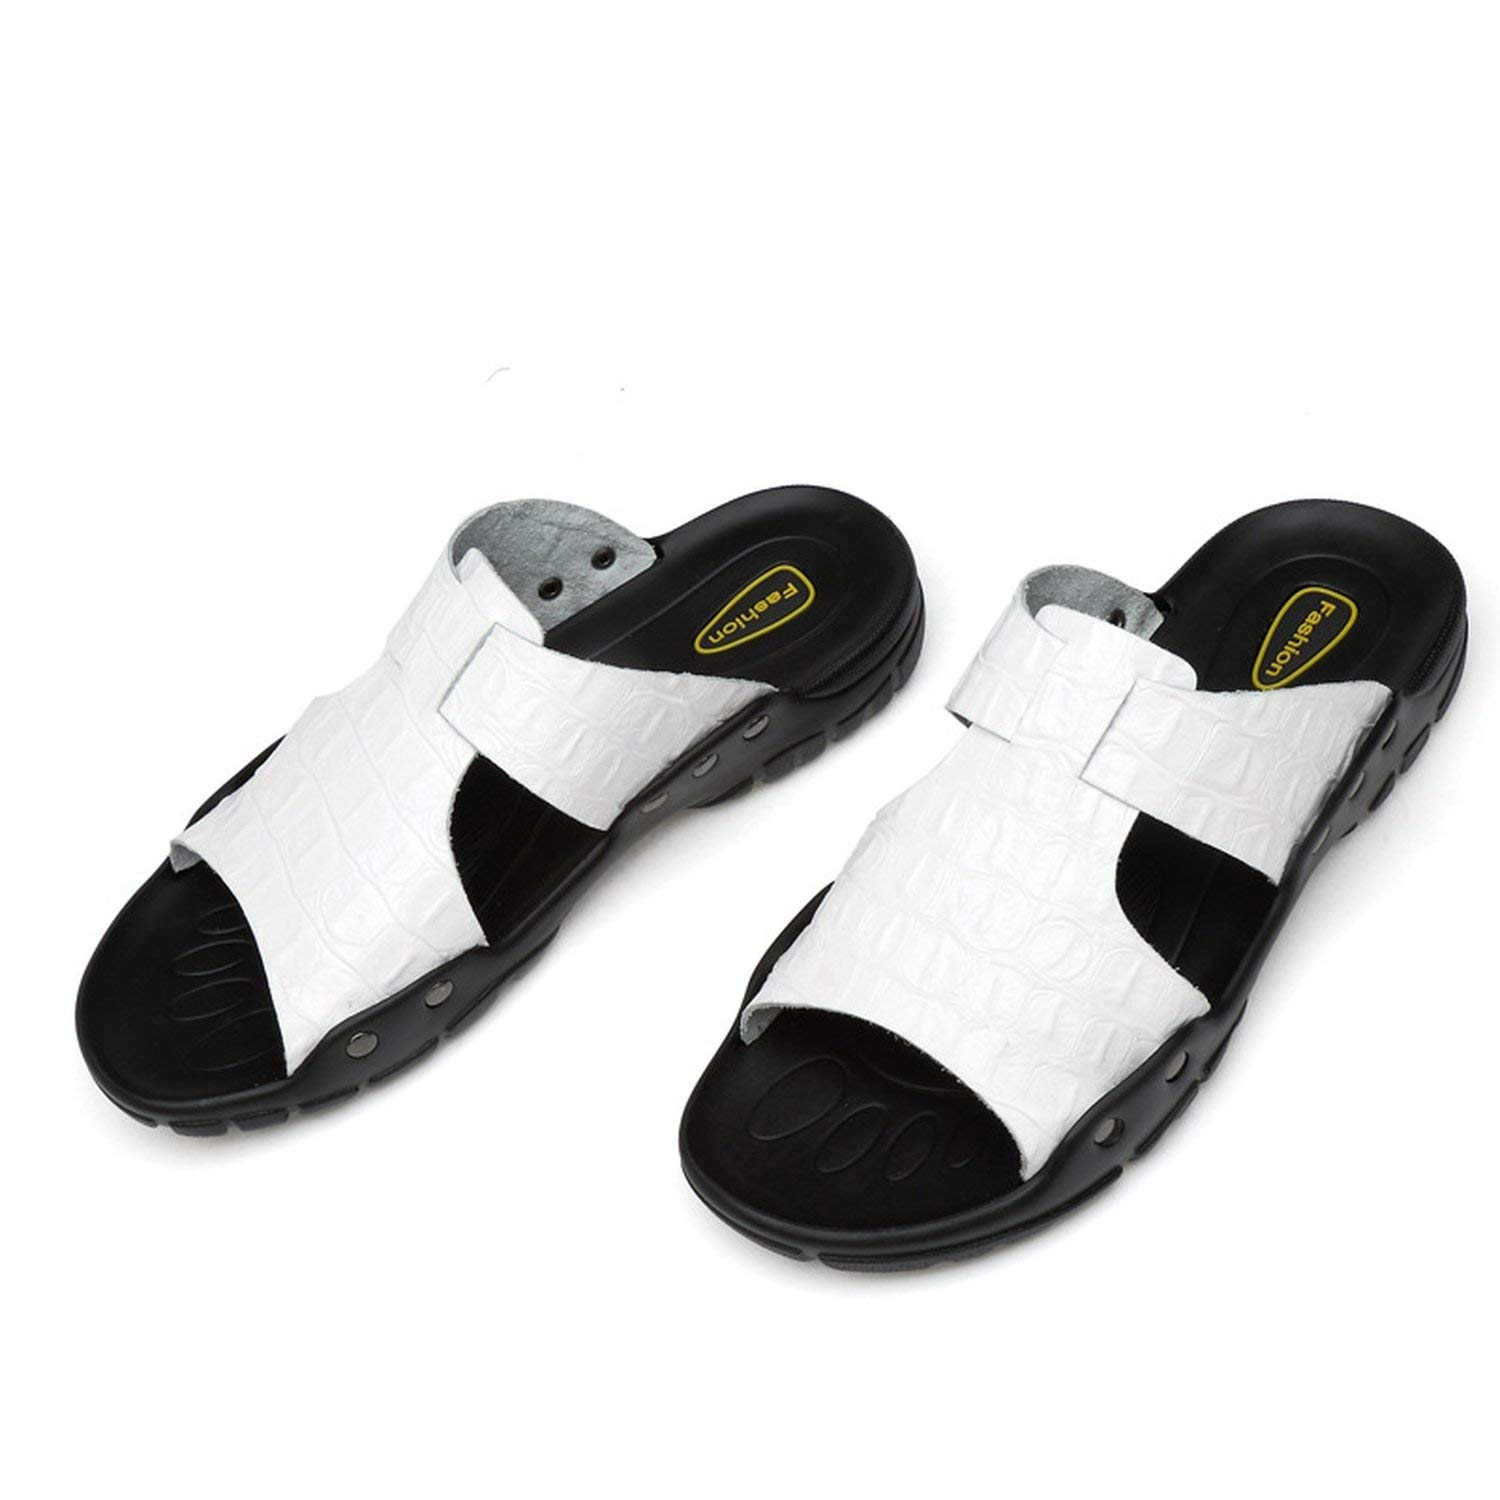 0370e18eba56 Get Quotations · Mens Sports Sandals Leather Fisherman Sandals Closed Toe  Summer Outdoor Beach Shoes Water Slippers